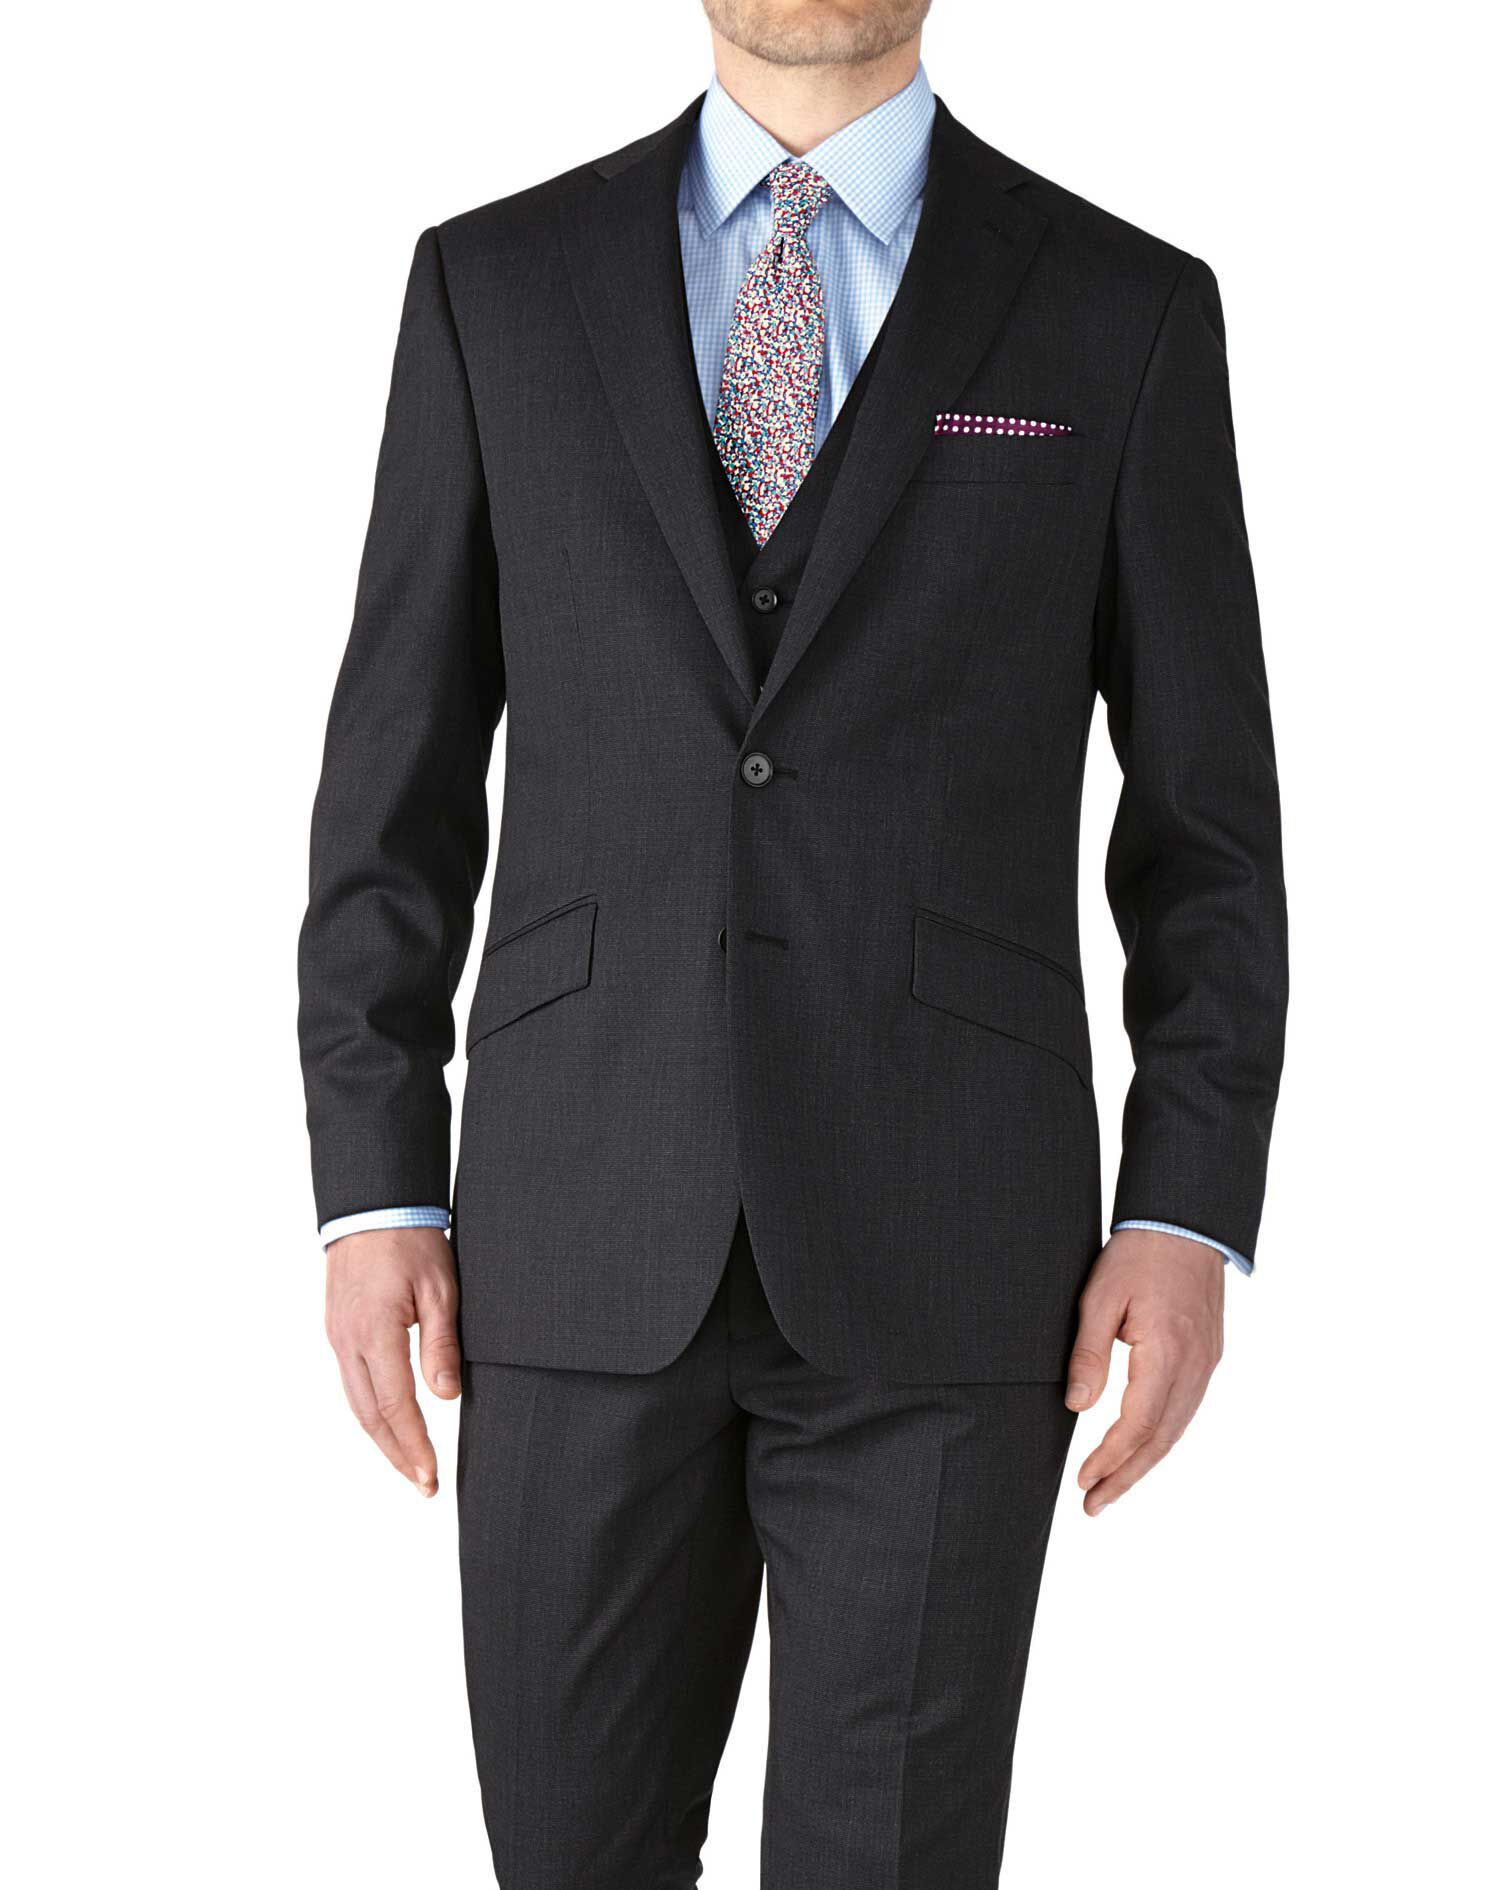 Charcoal Slim Fit End-On-End Business Suit Wool Jacket Size 42 by Charles Tyrwhitt